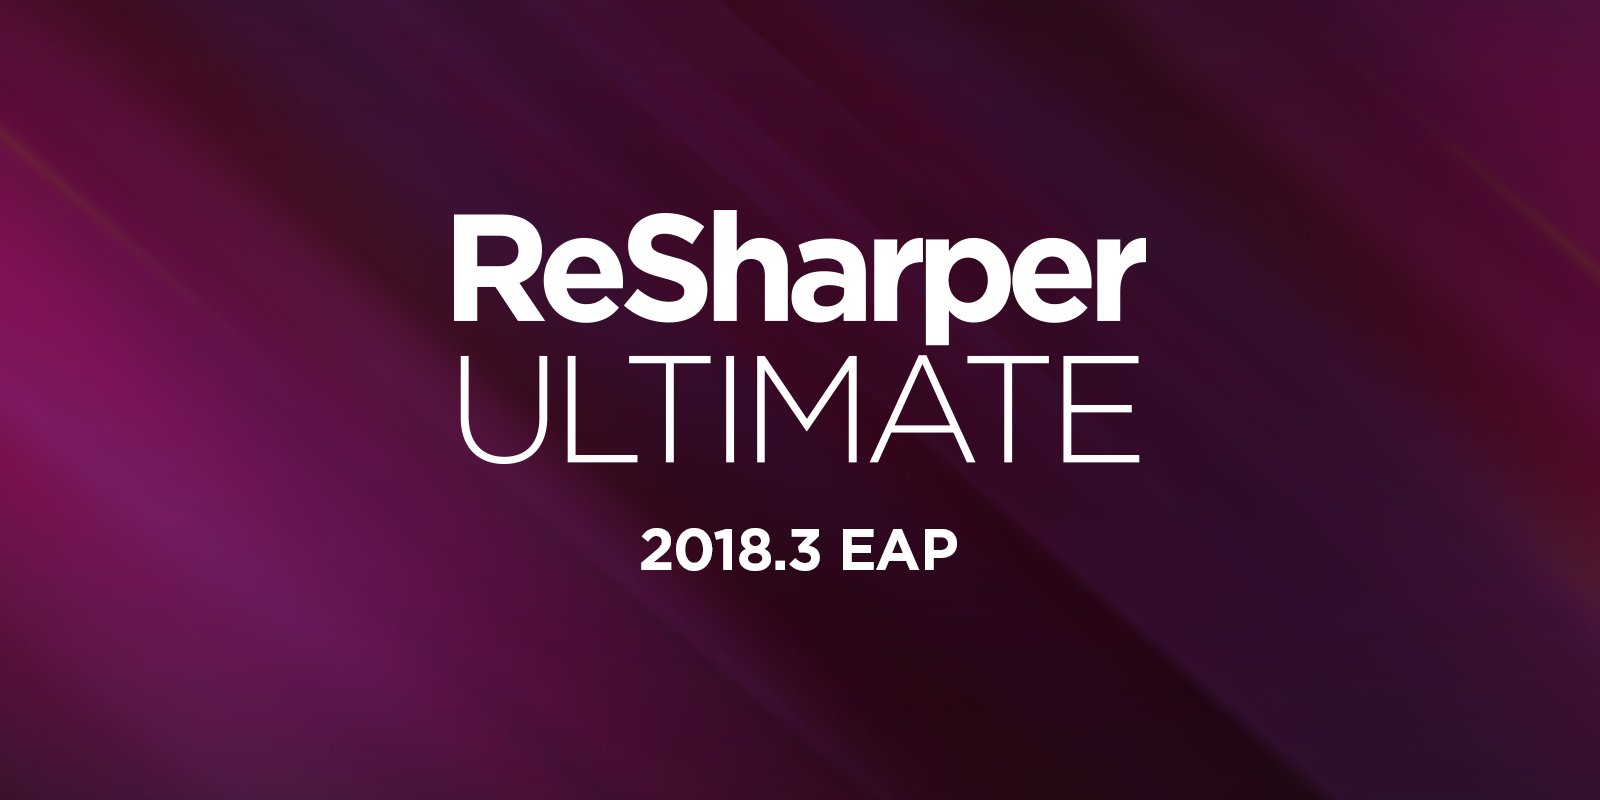 ReSharper Ultimate 2018.3 EAP